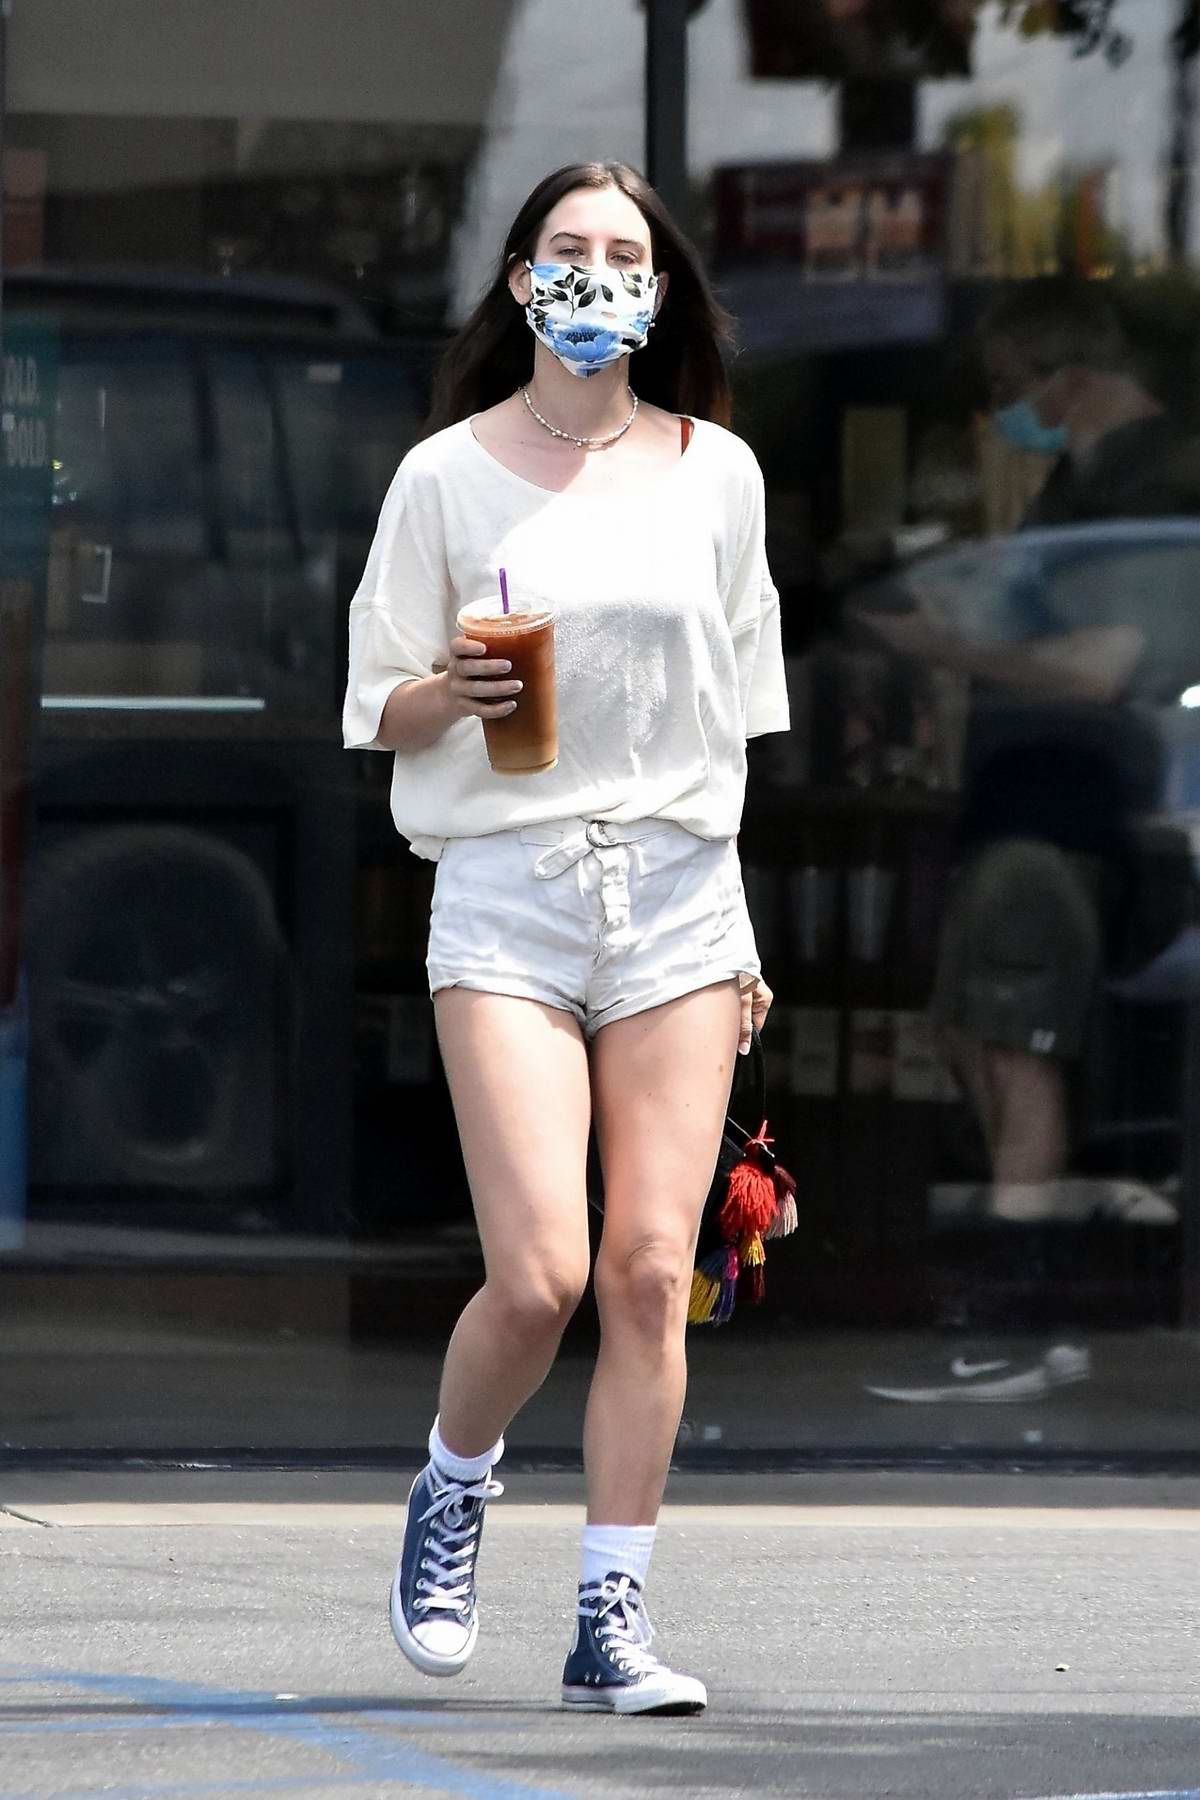 Scout Willis puts on a leggy display in shorts while making a coffee run in Los Feliz, California